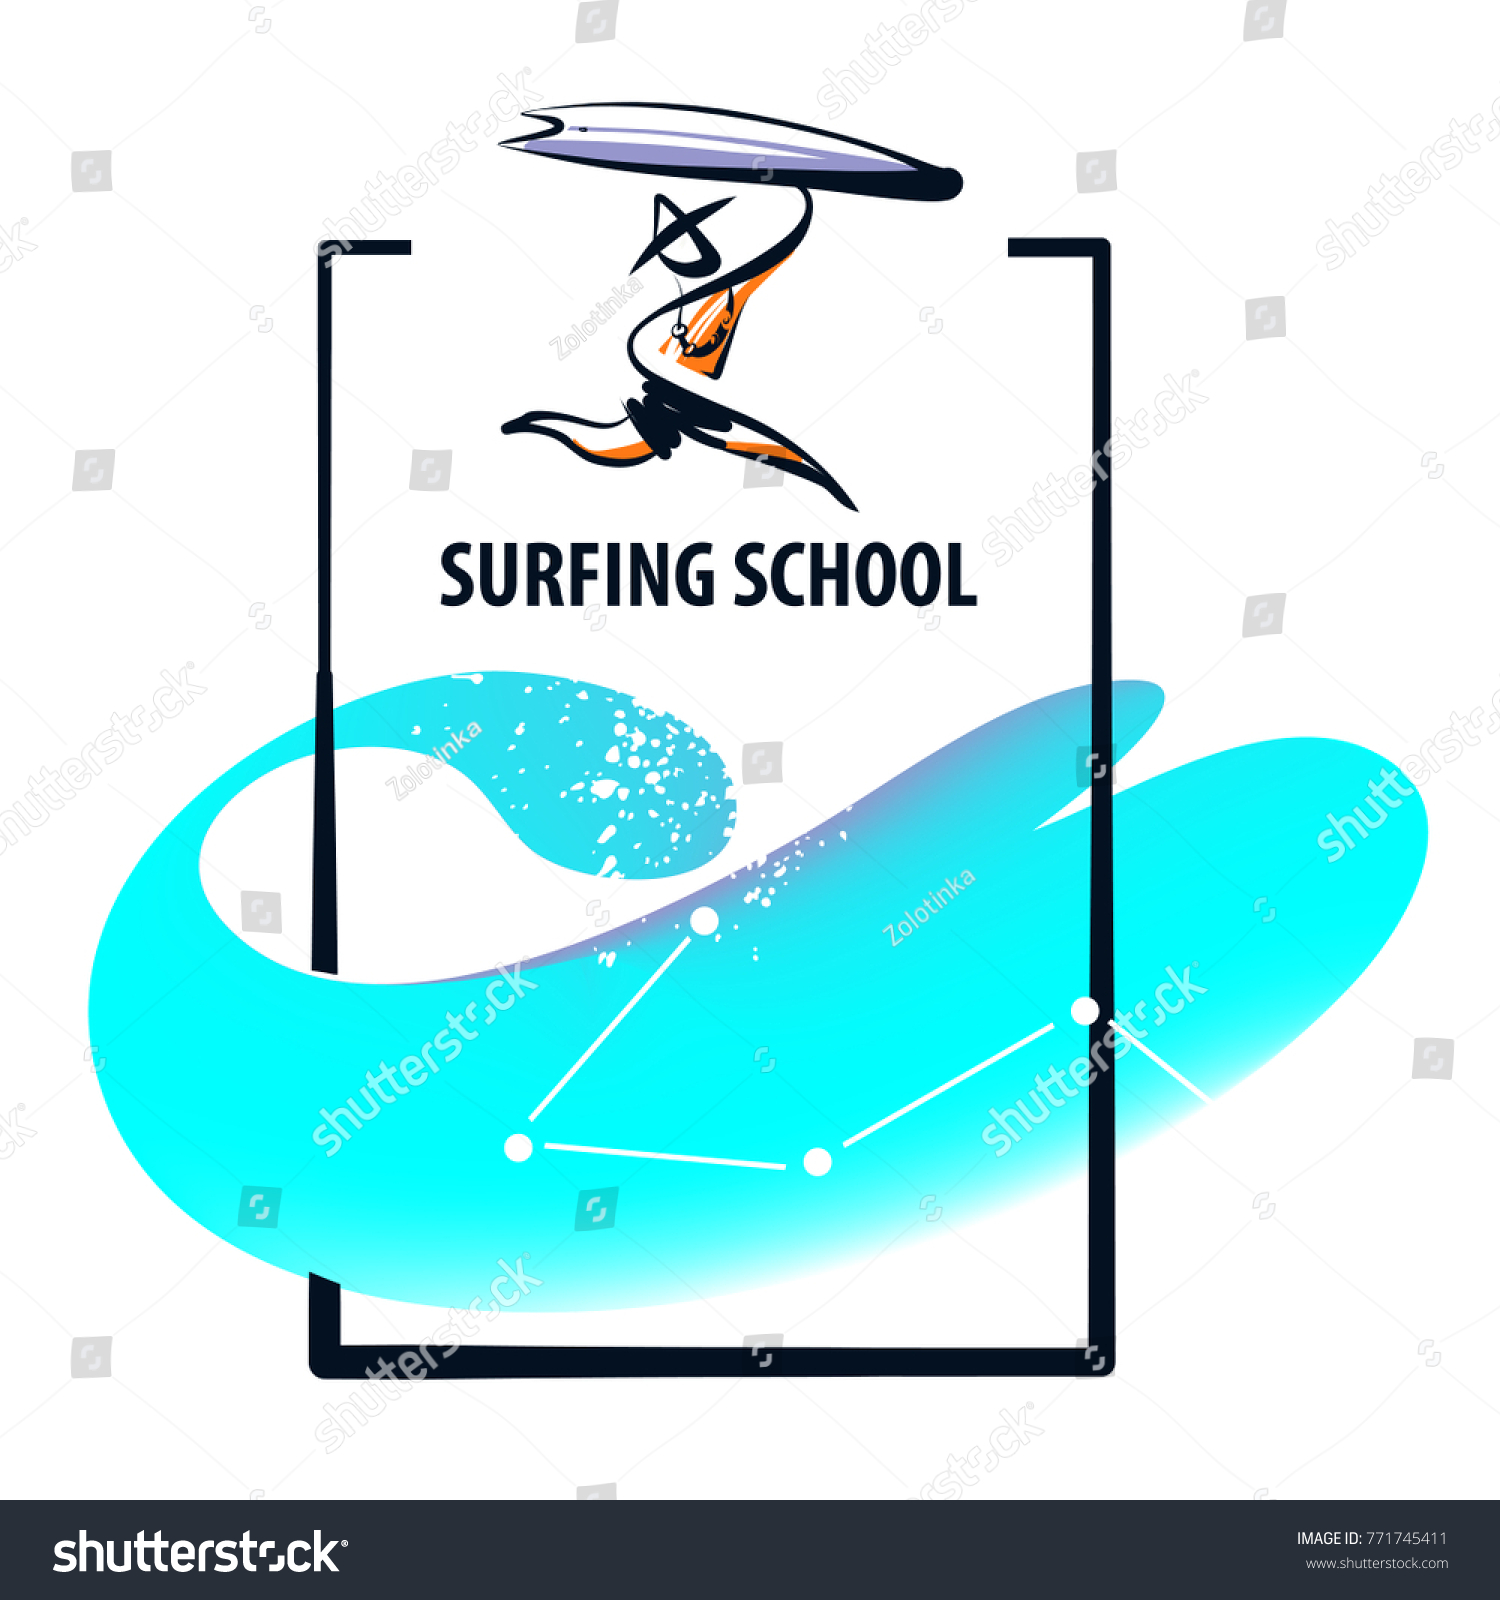 Silhouette Freehand Drawn Man Surfboard Sketch Stock Photo (Photo ...